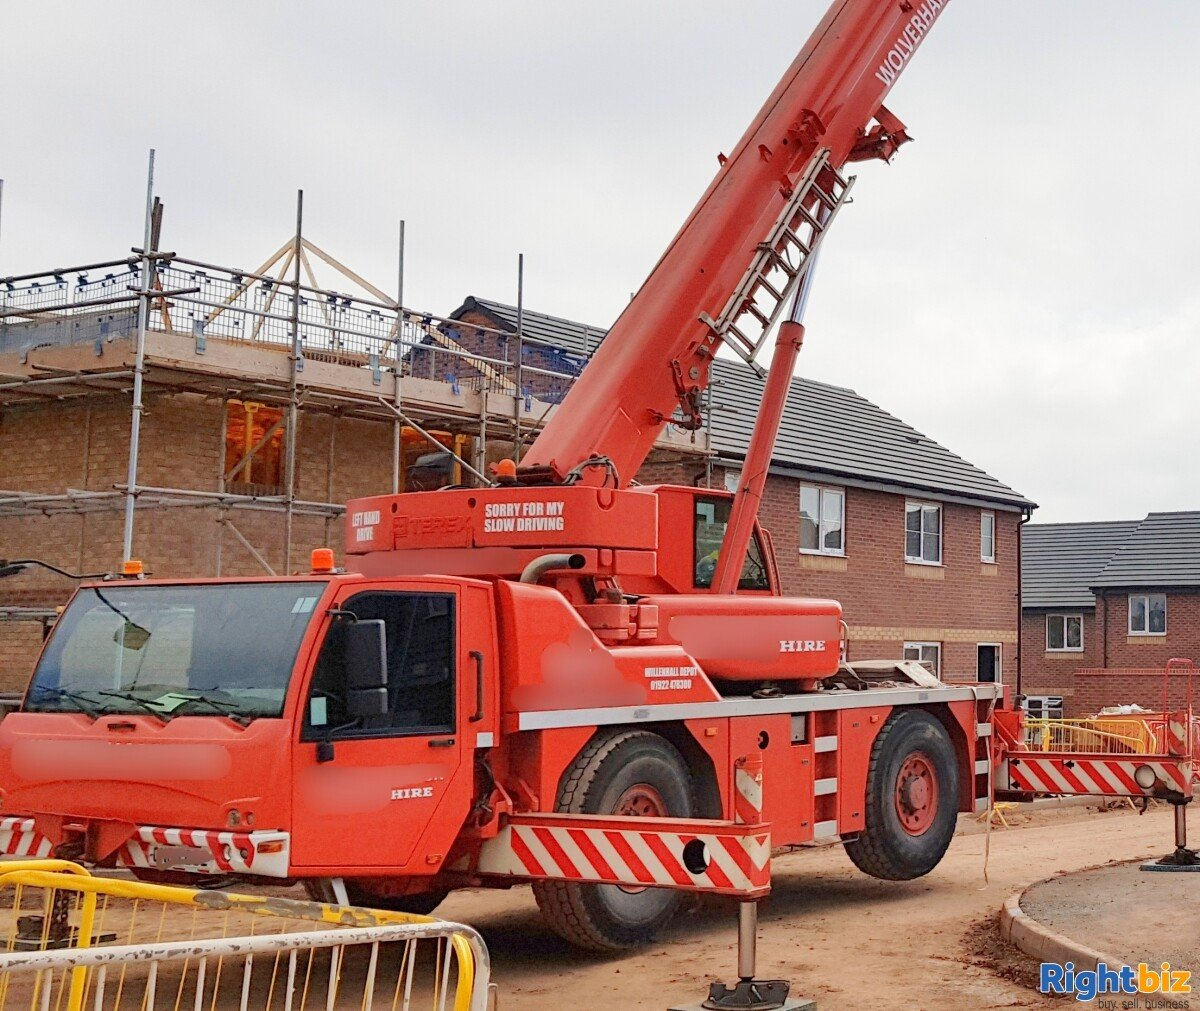 Profitable Haulage and Crane Hiring Business for sale in Wolverhampton, Construction Business - Image 6